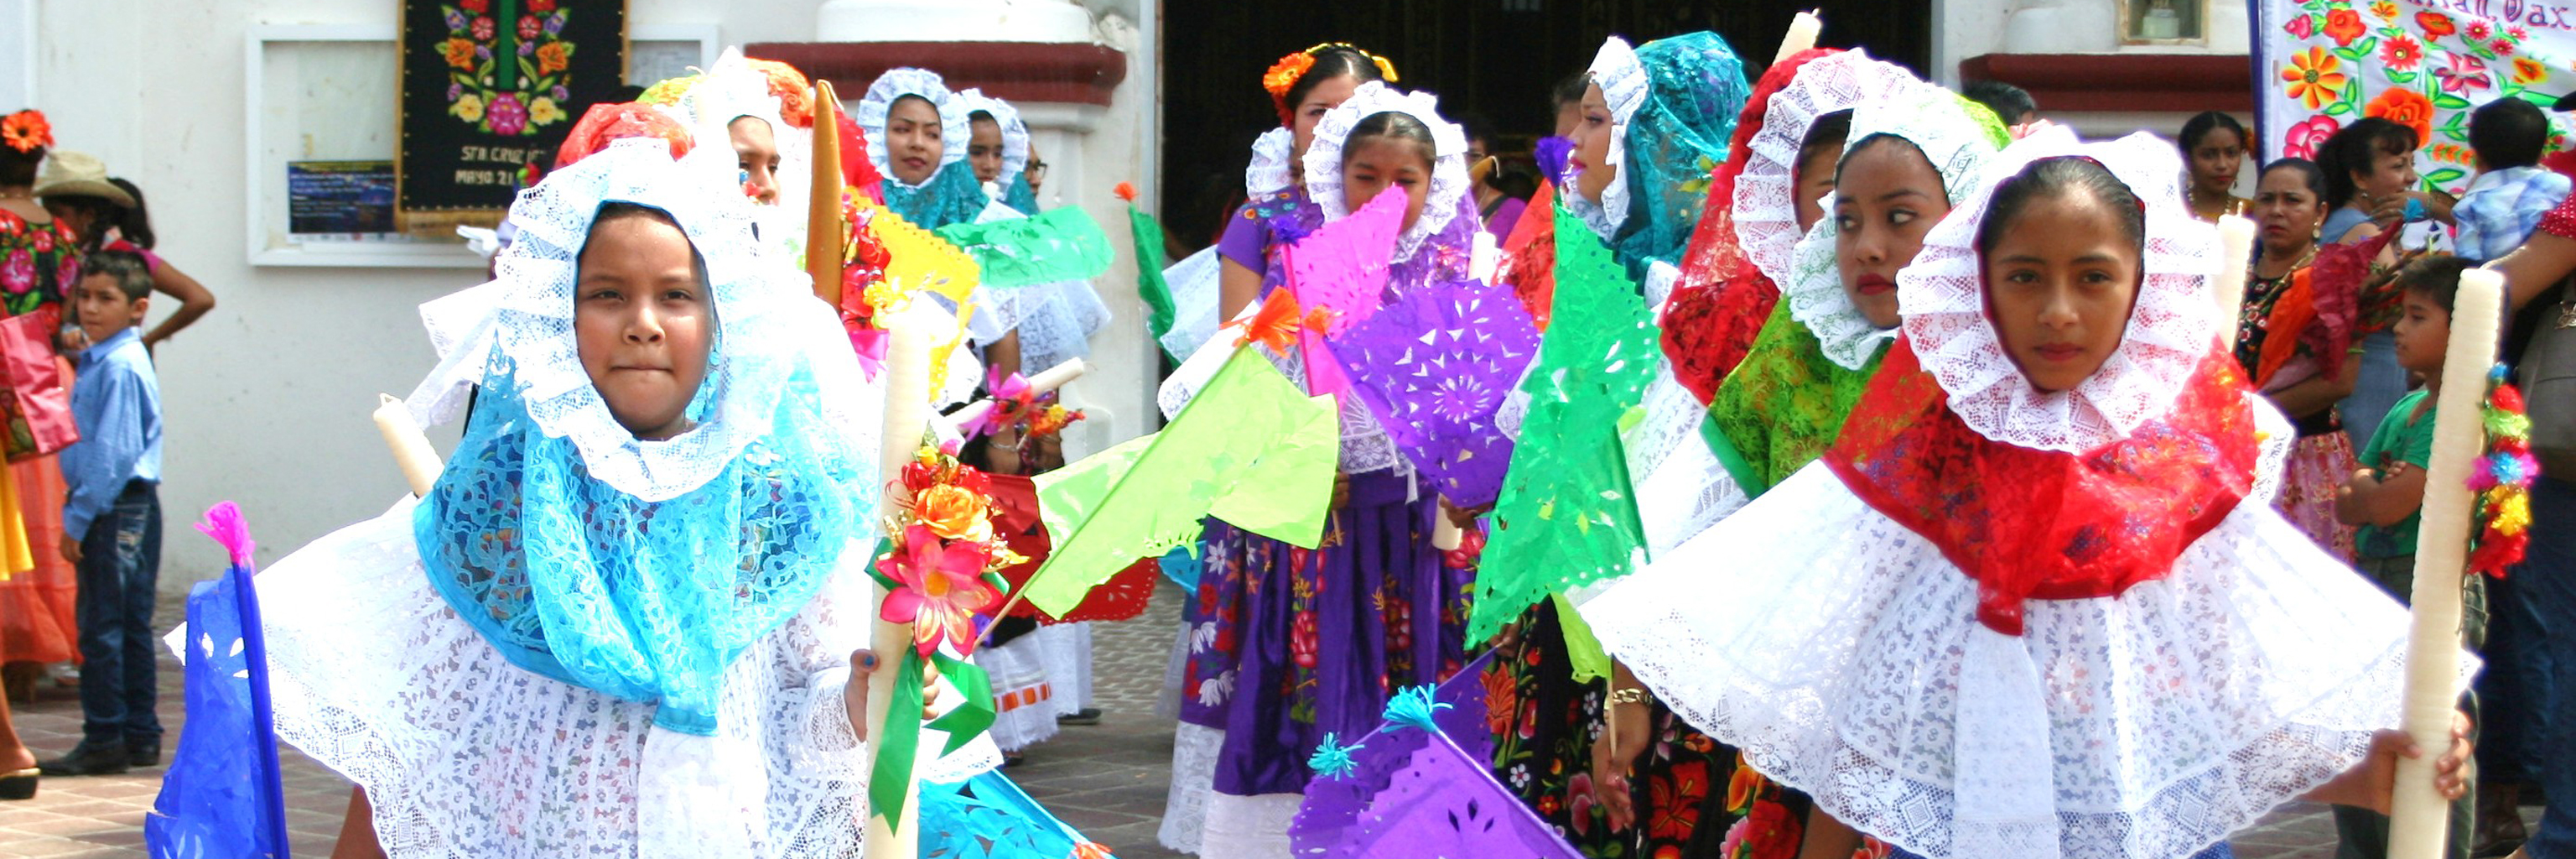 Lines of kids dressed in colorful cultural wear